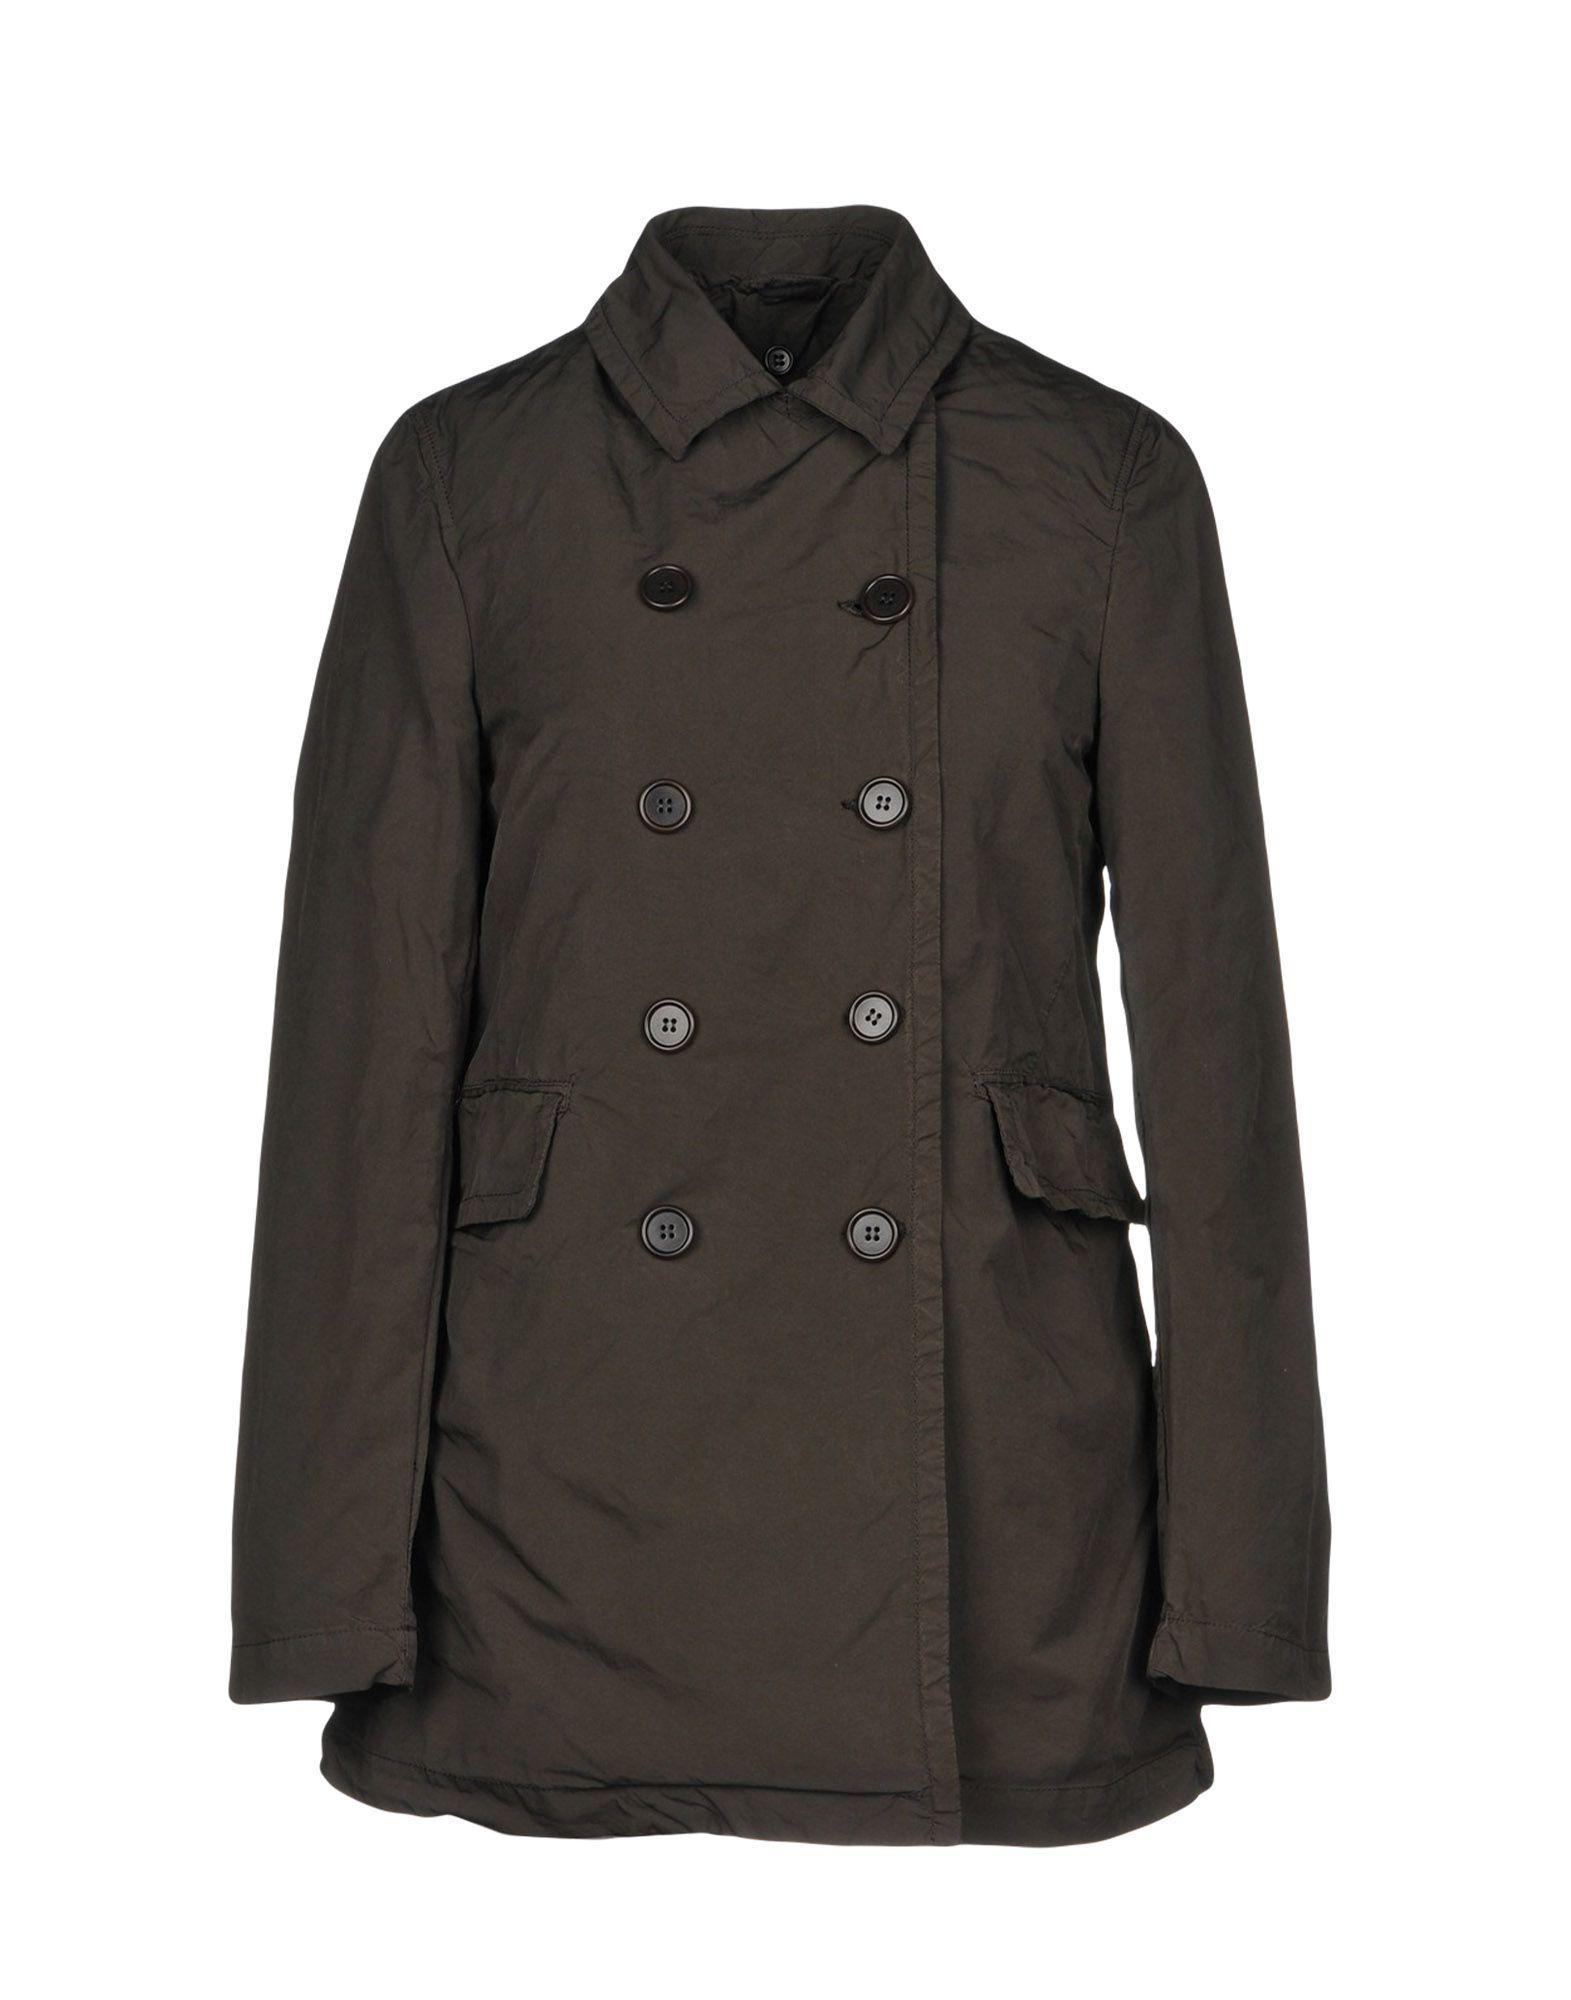 Aspesi Full-length Jacket In Military Green